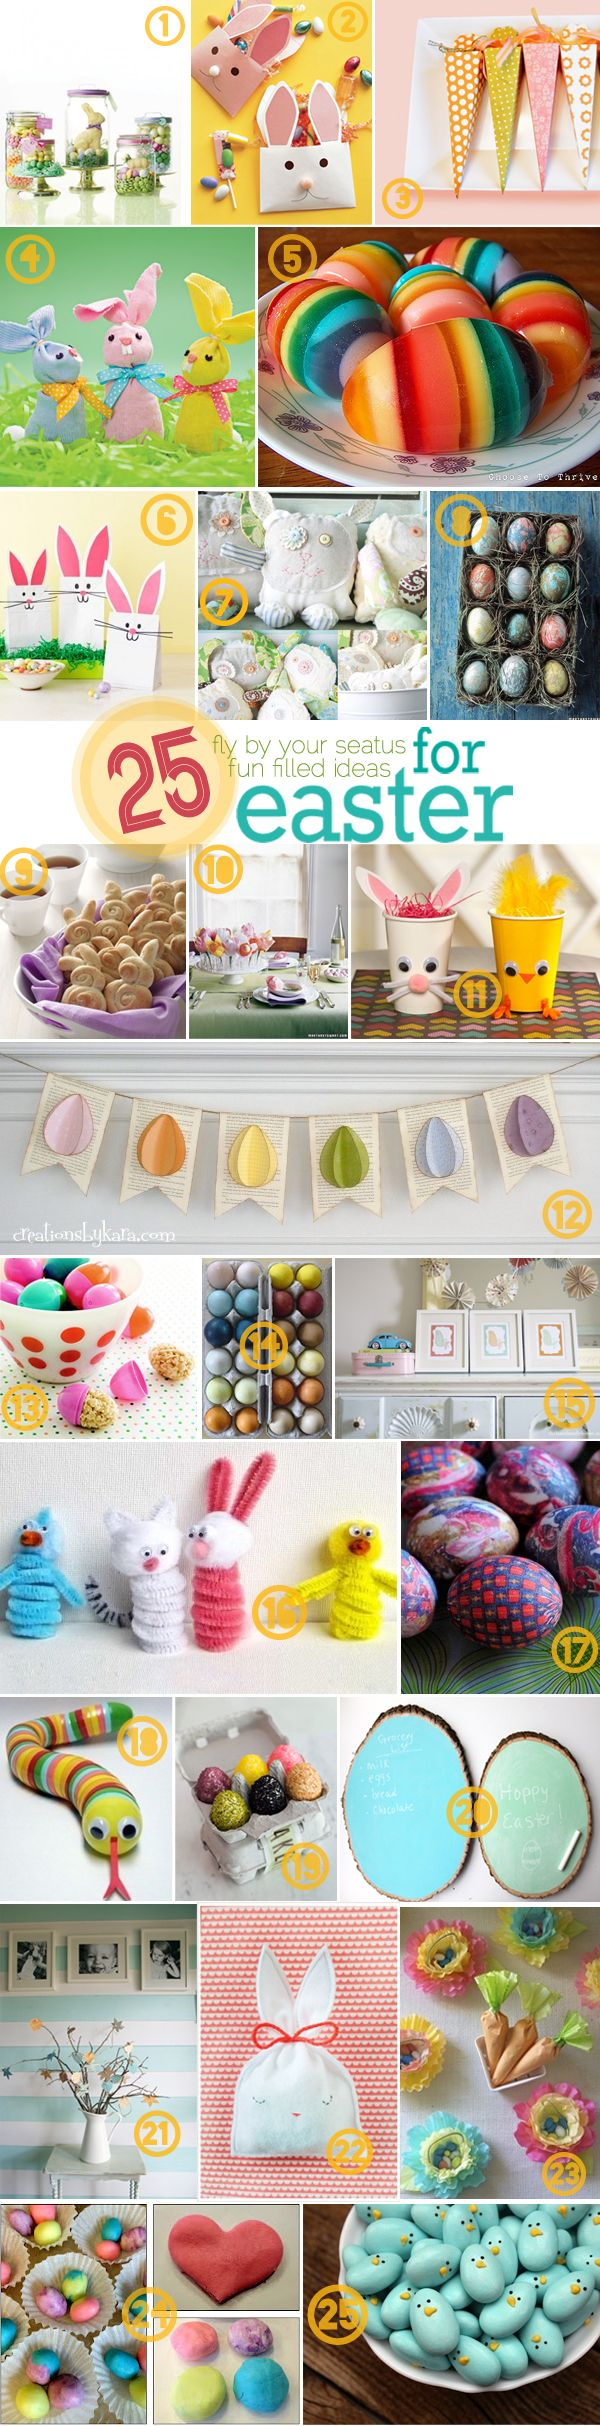 25 last minute ideas for Easter